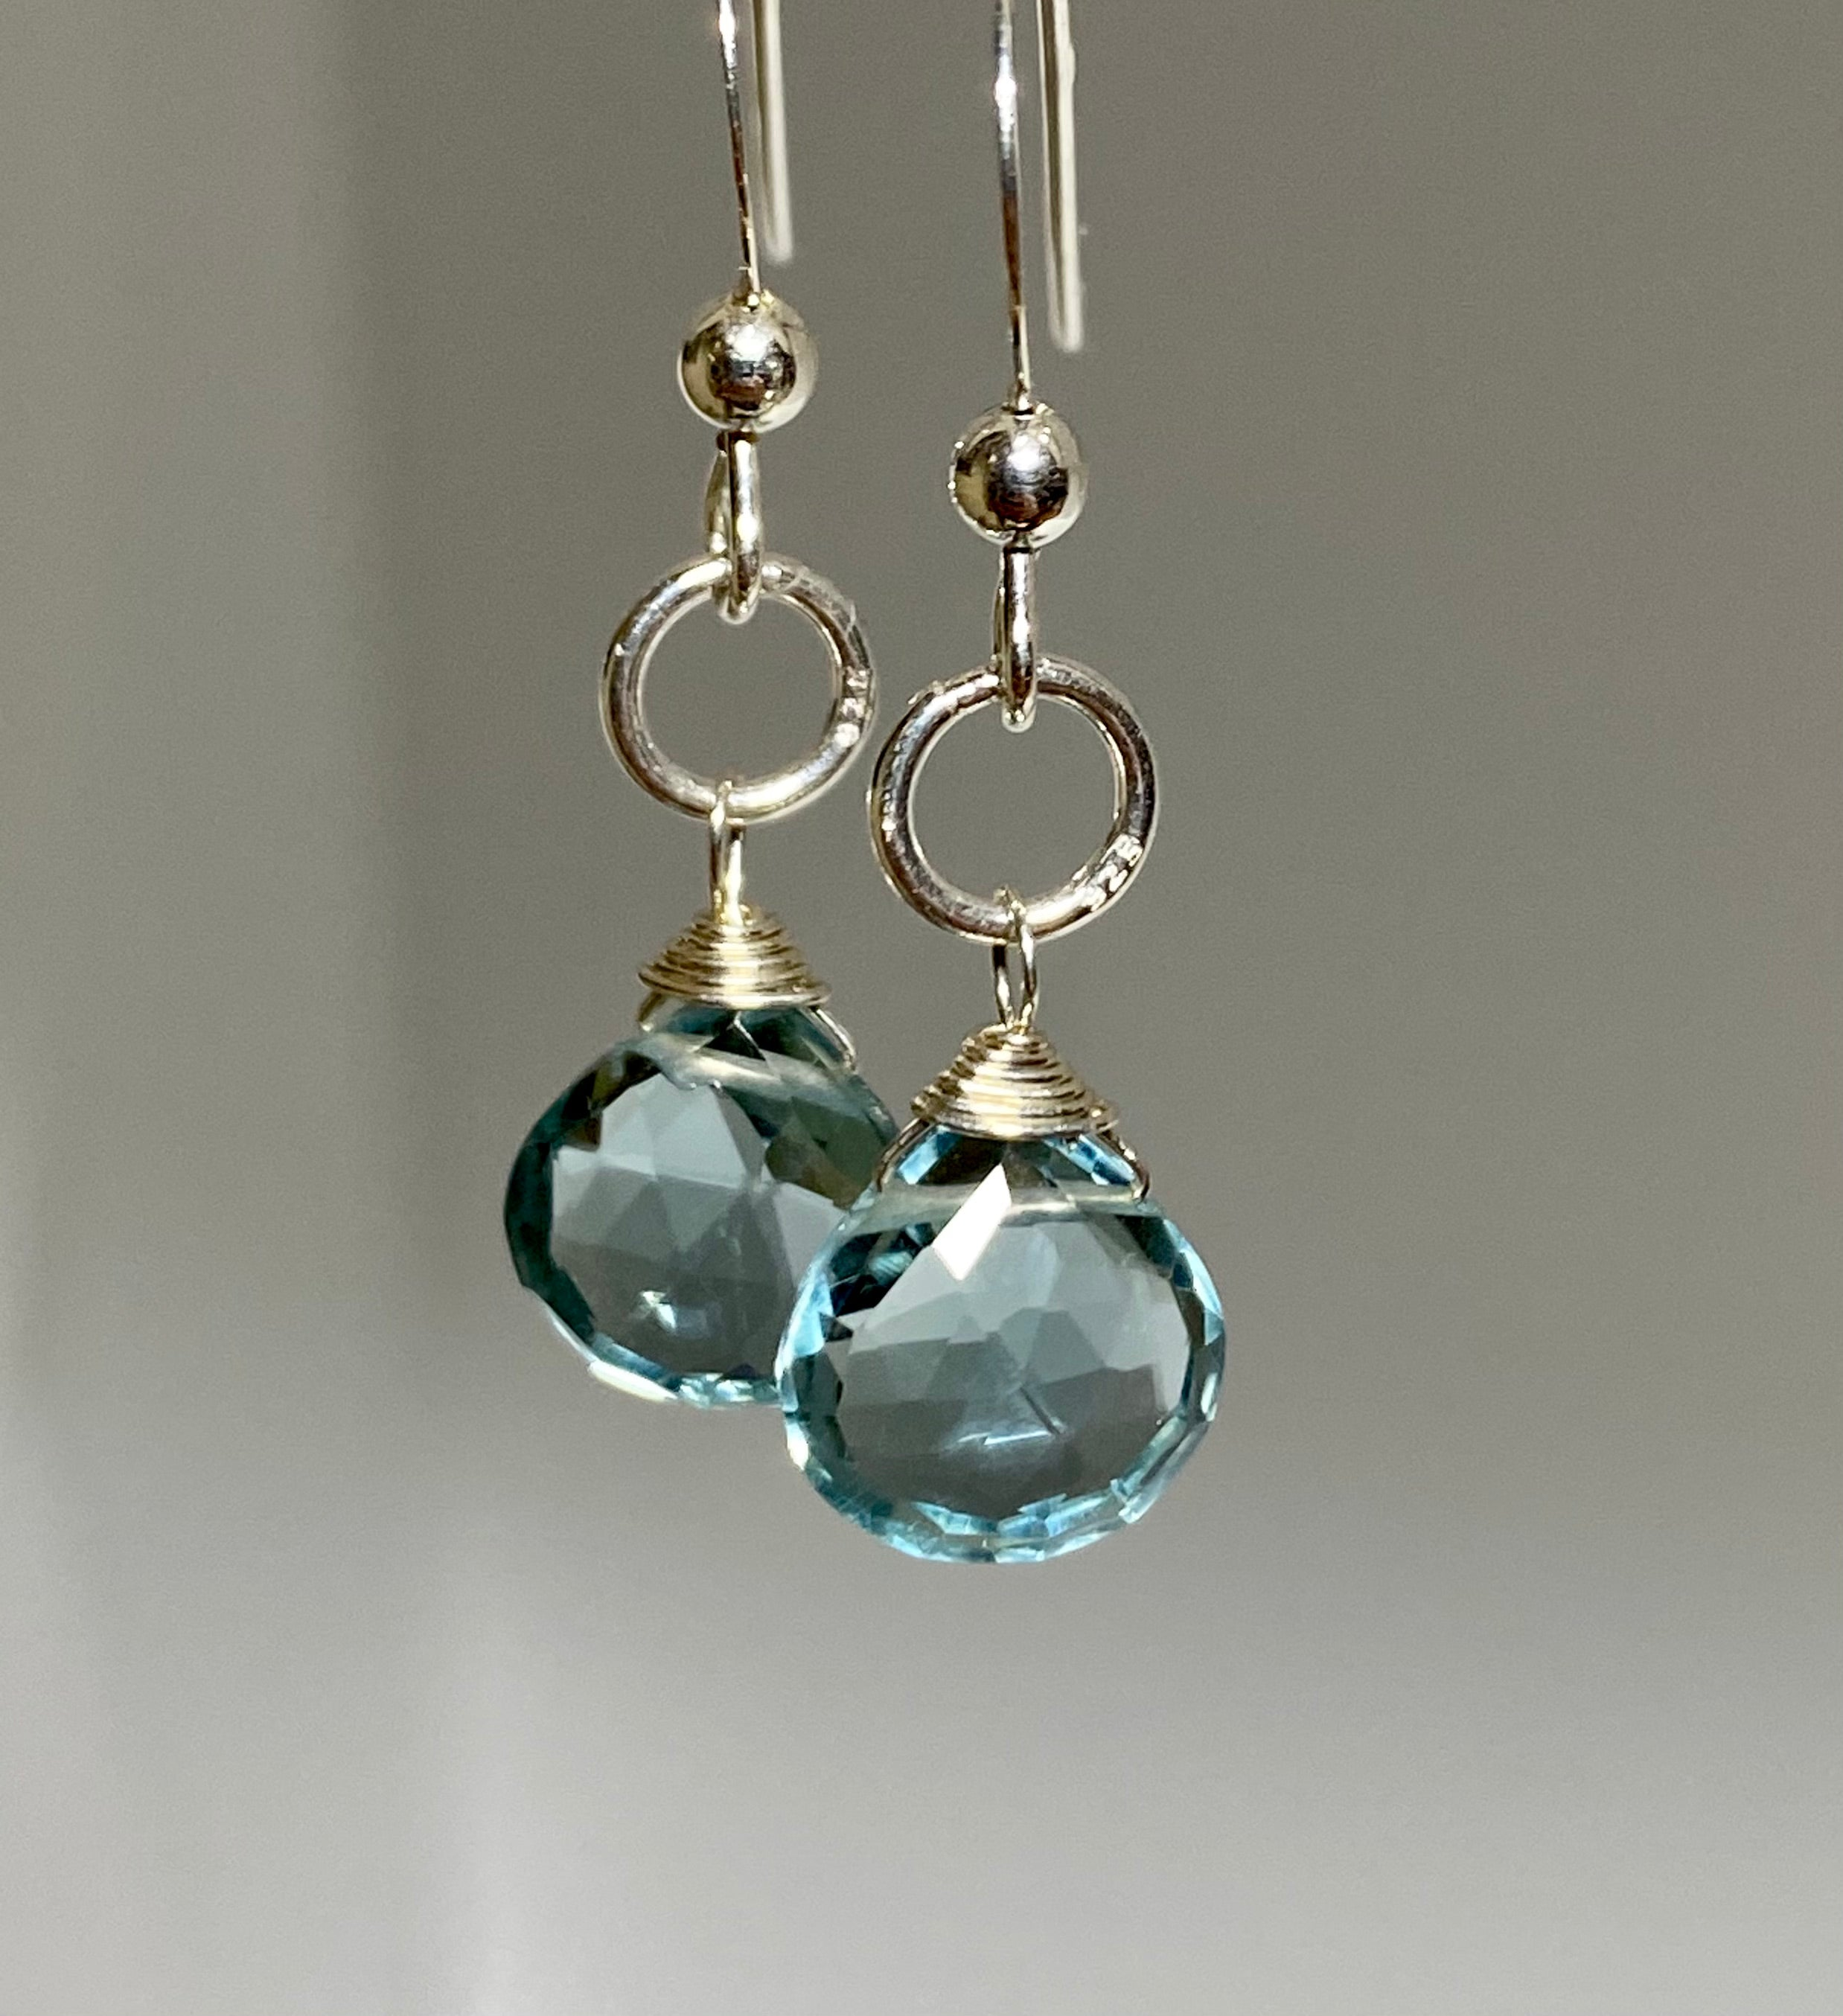 Aquamarine Mini Earrings